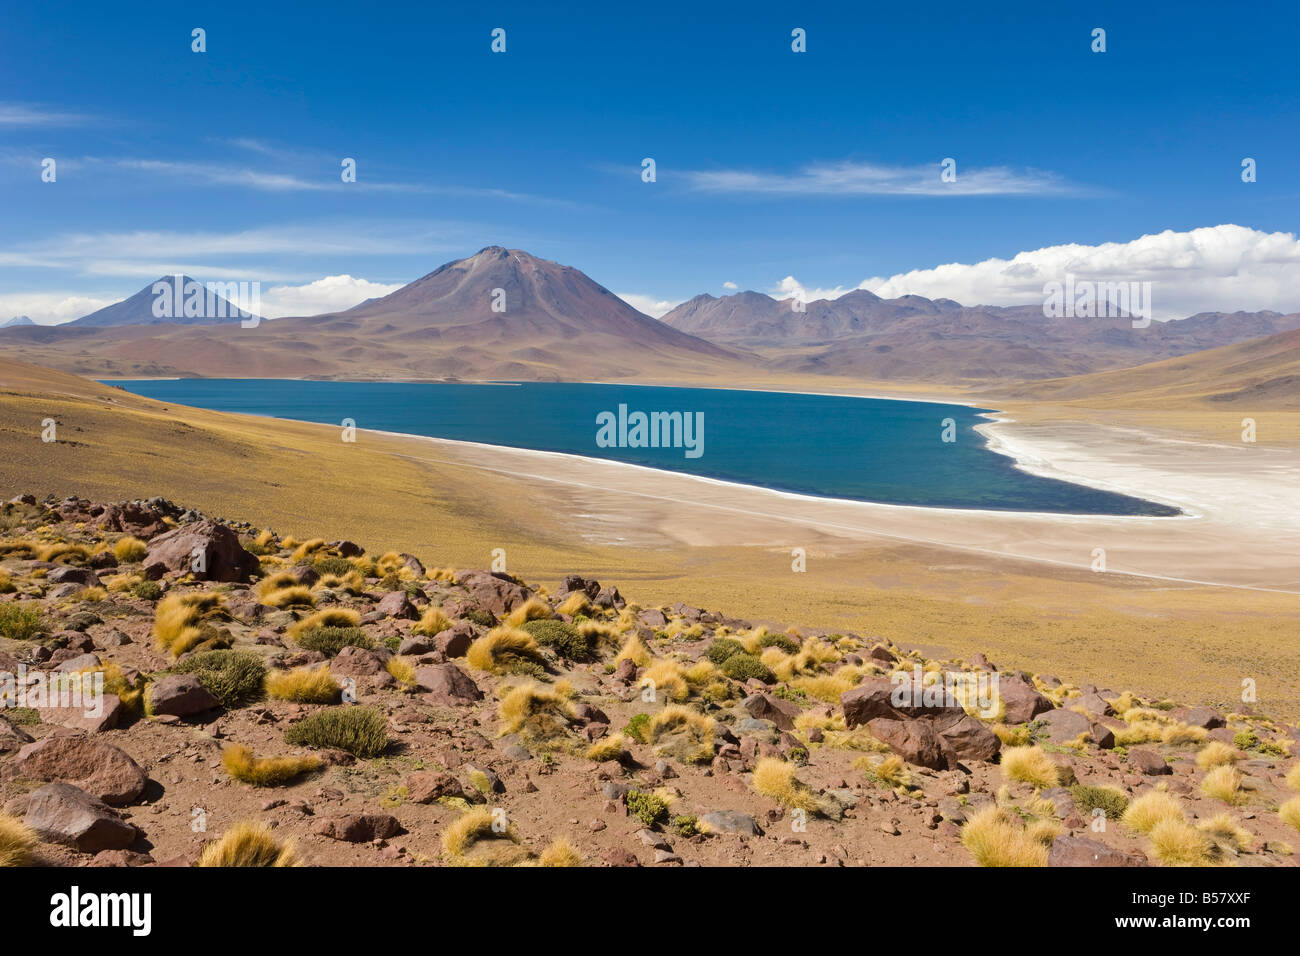 Laguna Miscanti at an altitude, Los Flamencos National Reserve, Atacama Desert, Antofagasta Region, Chile - Stock Image